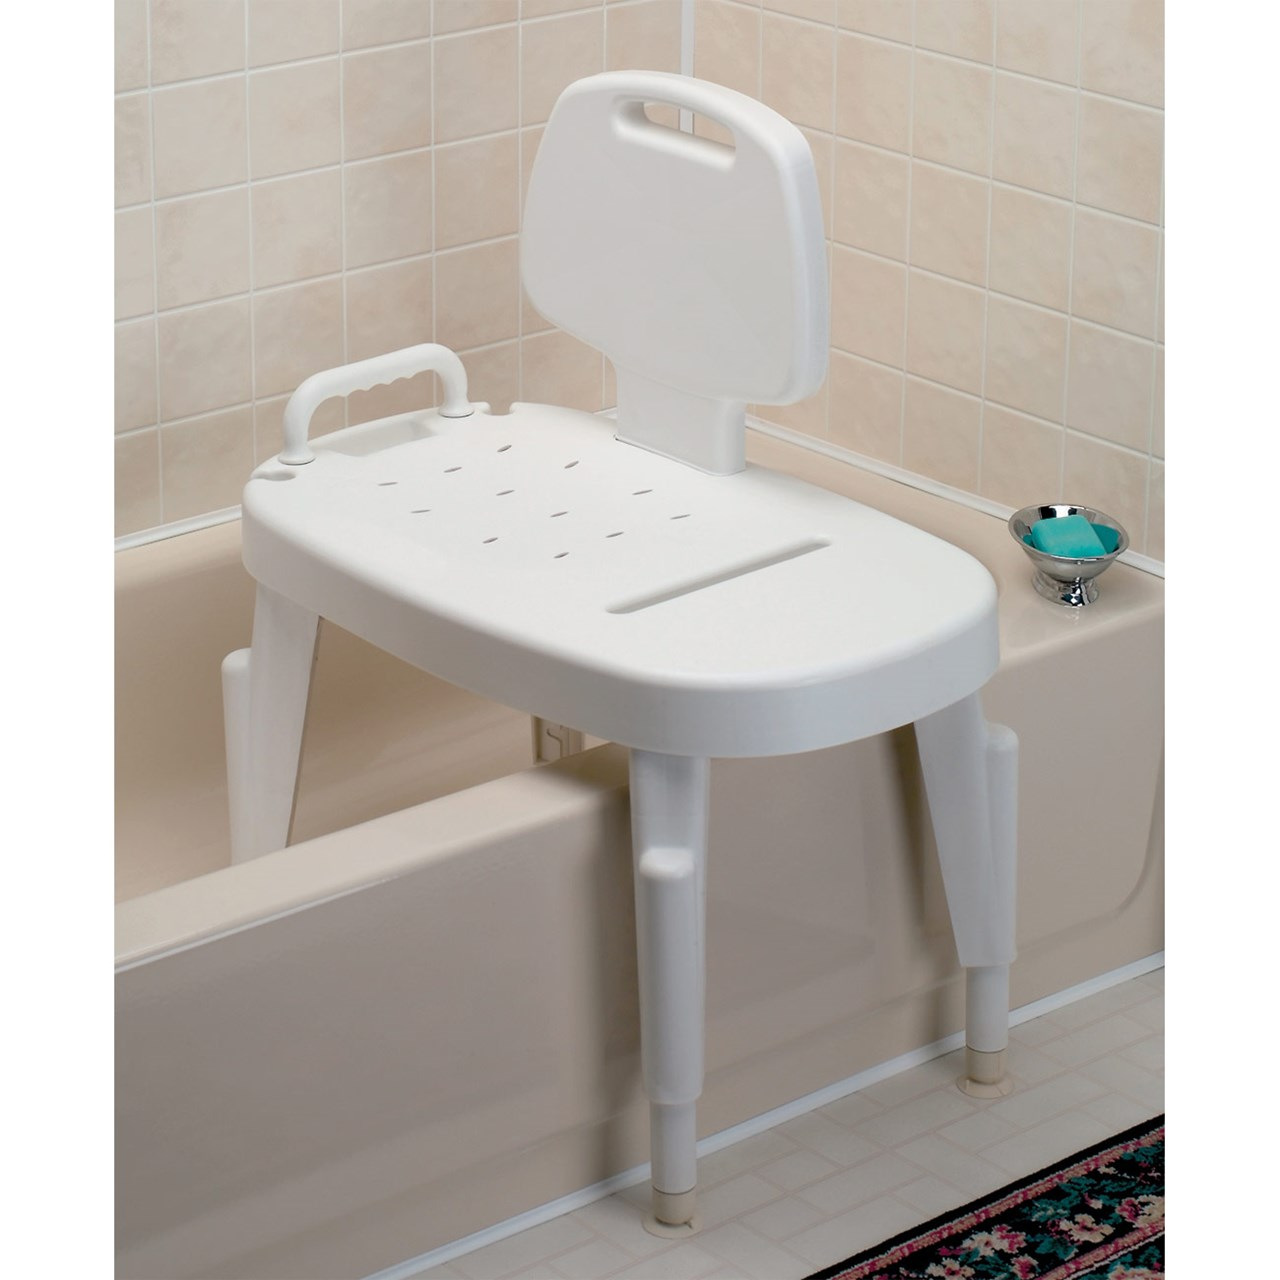 transfer shower chair revolving manufacturers in chennai maxiaids adjustable bench